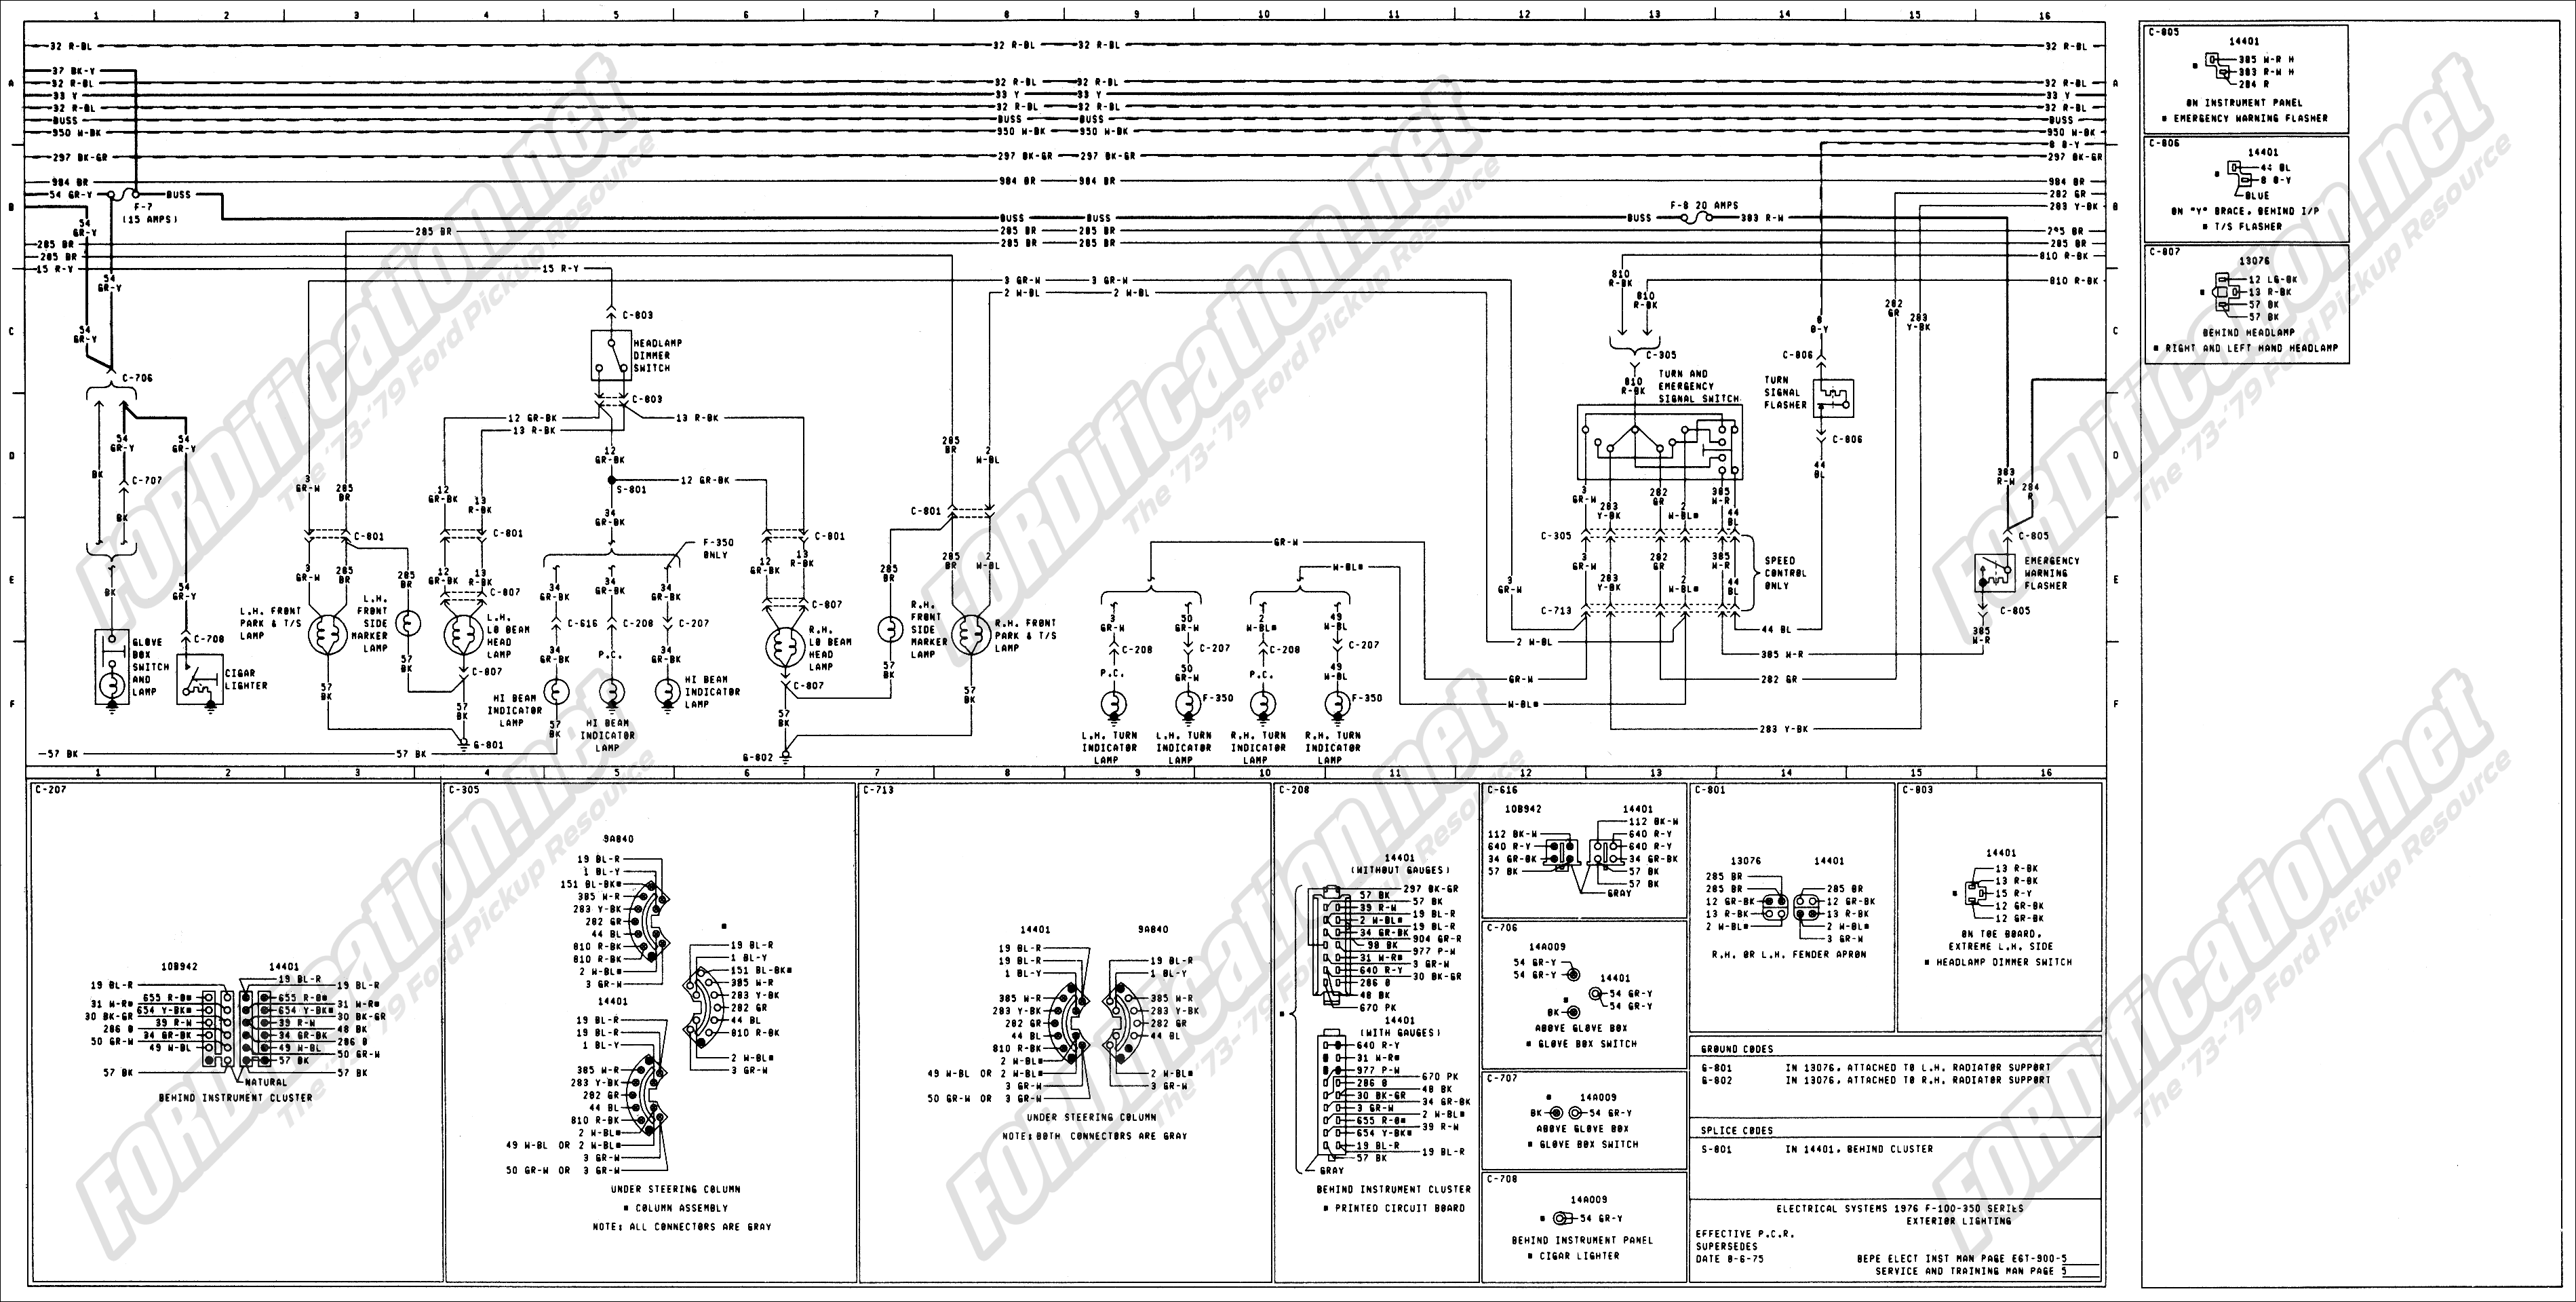 1976 F250 Wiring Diagram - Home Wiring Diagrams  F Fuel Wiring Diagram on 1979 malibu wiring diagram, 1979 silverado wiring diagram, 1979 f700 wiring diagram, 1979 bronco wiring diagram, 1979 blazer wiring diagram, 1979 f150 wiring diagram, 1979 suburban wiring diagram, 1979 corolla wiring diagram, 1979 f100 wiring diagram, 1979 f250 wiring diagram, 1979 lincoln wiring diagram, 1979 dodge wiring diagram, 1979 mustang wiring diagram,